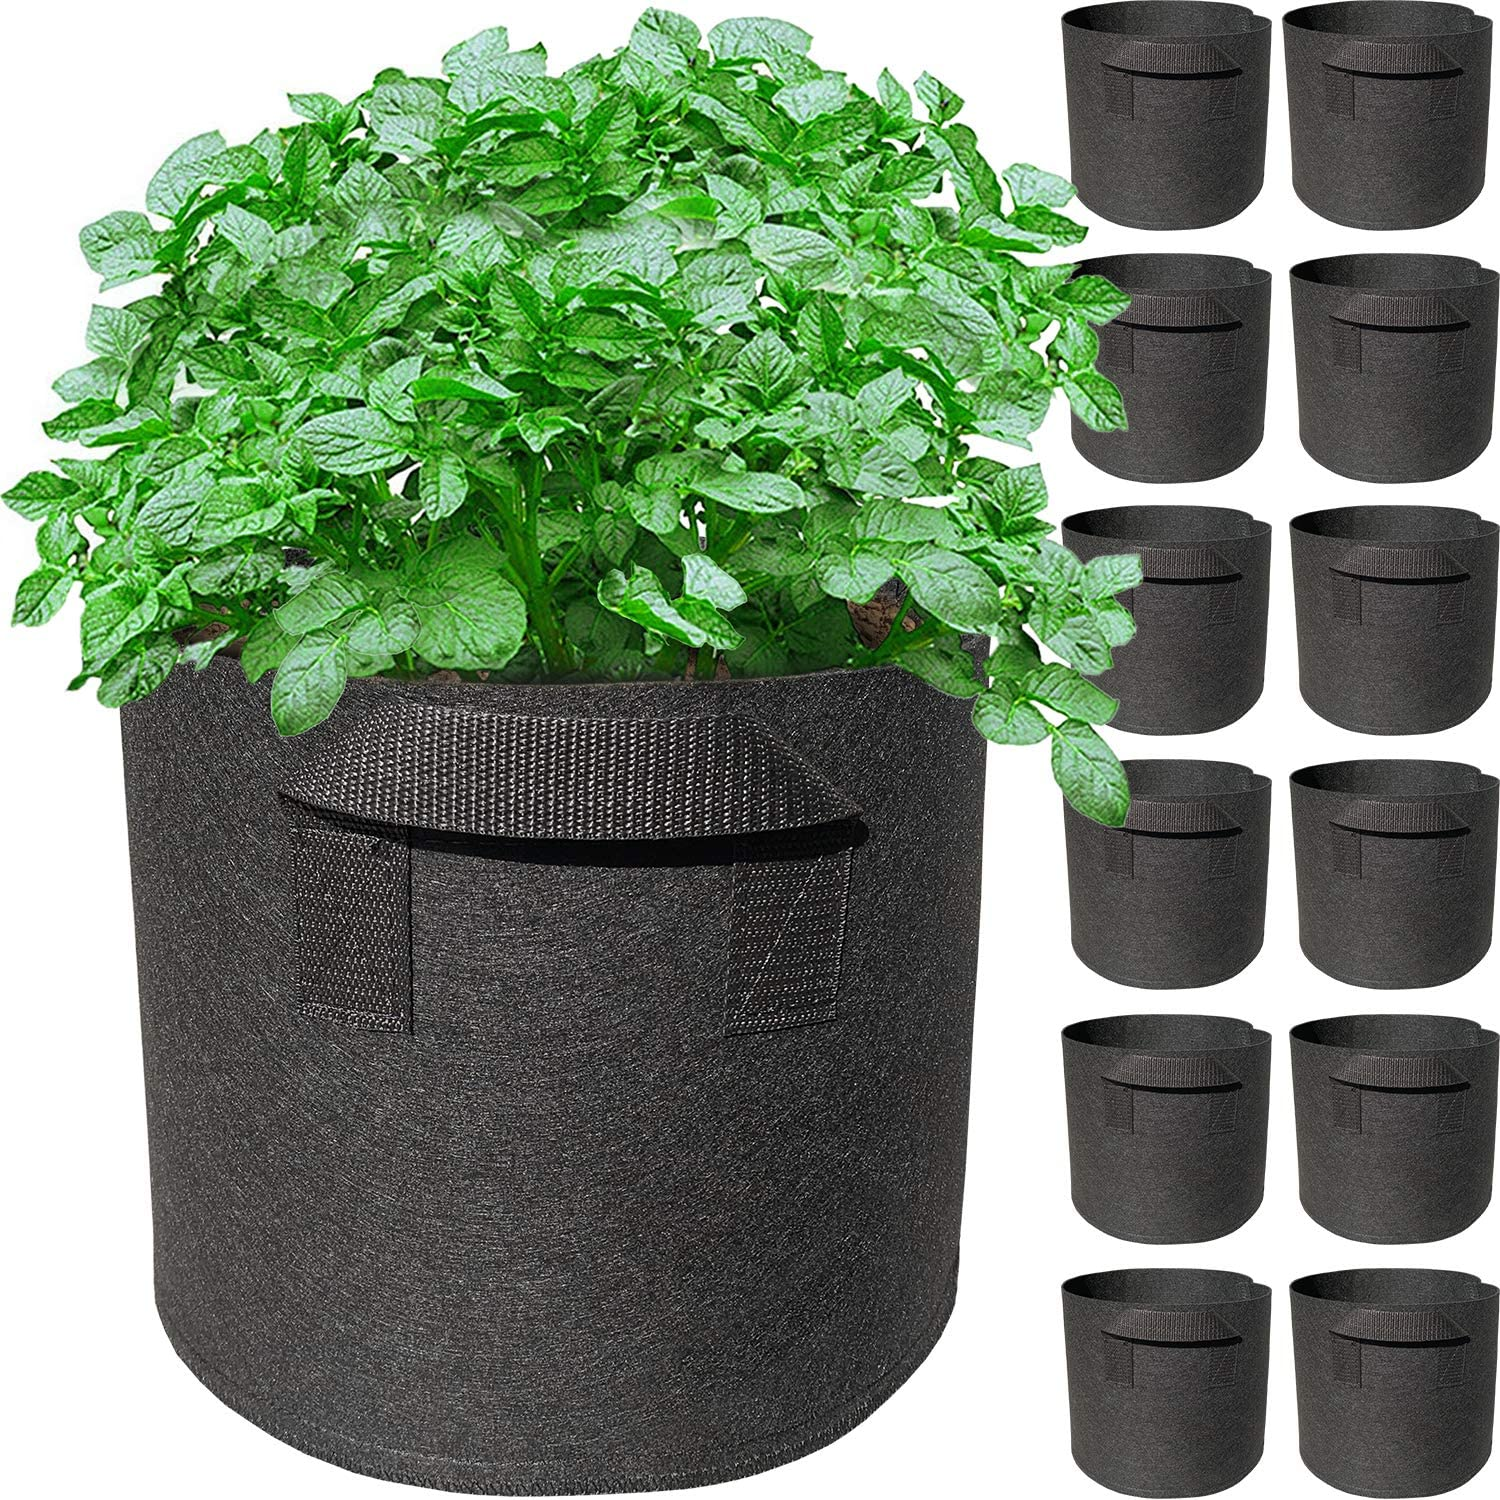 12 Pack 1 Gallon Grow Bags with Handles Garden Vegetable Flower Grow Bags Nonwoven Aeration Fabric Pots Container for Nursery Garden and Planting Grow (1 Gallon, Black)